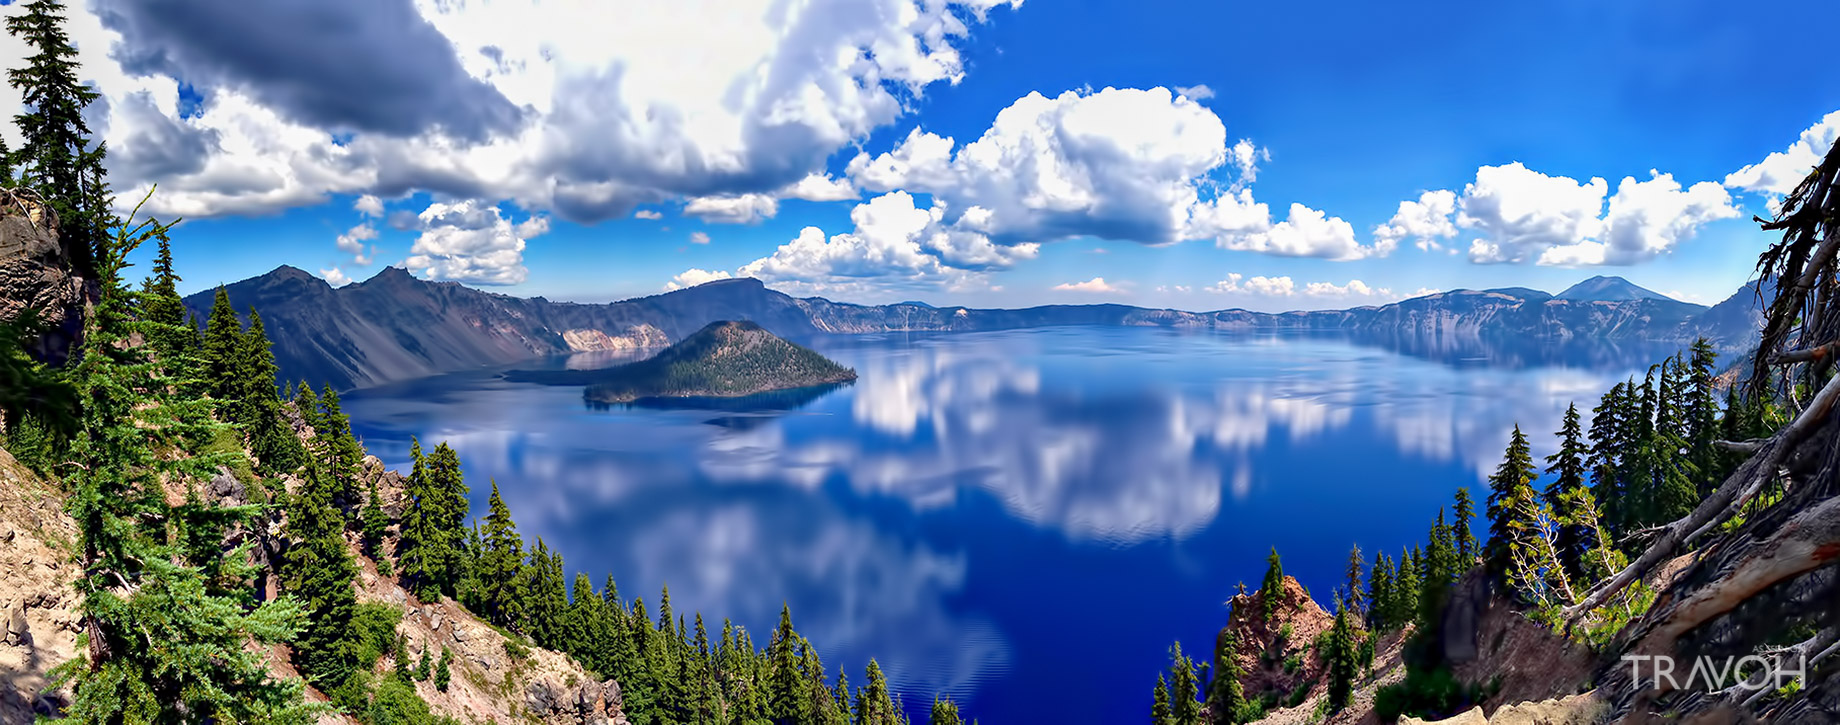 Incredible Panoramic View of Crater Lake in Oregon, USA